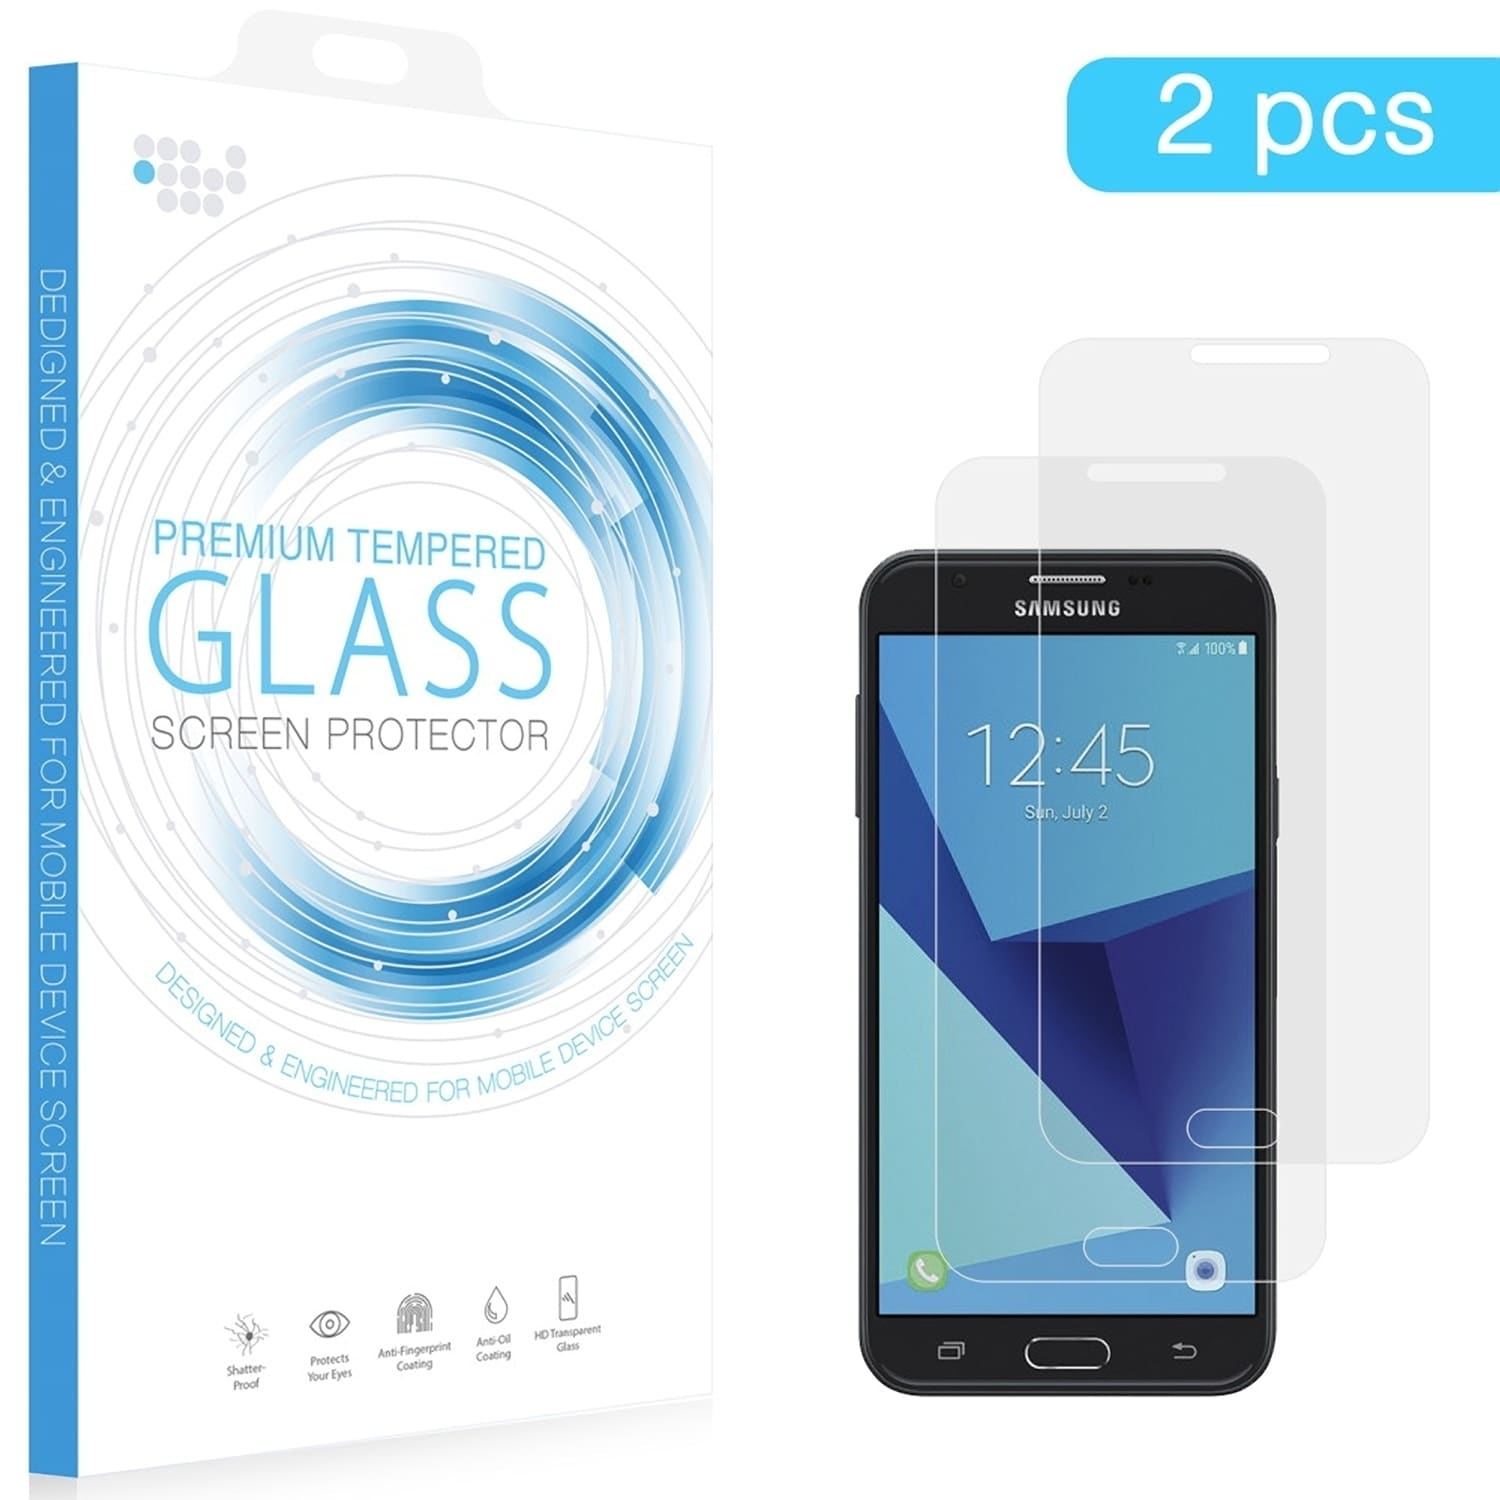 Shop Samsung Galaxy J3 Achieve (J3 Top) Tempered Glass Screen Protector - Free Shipping